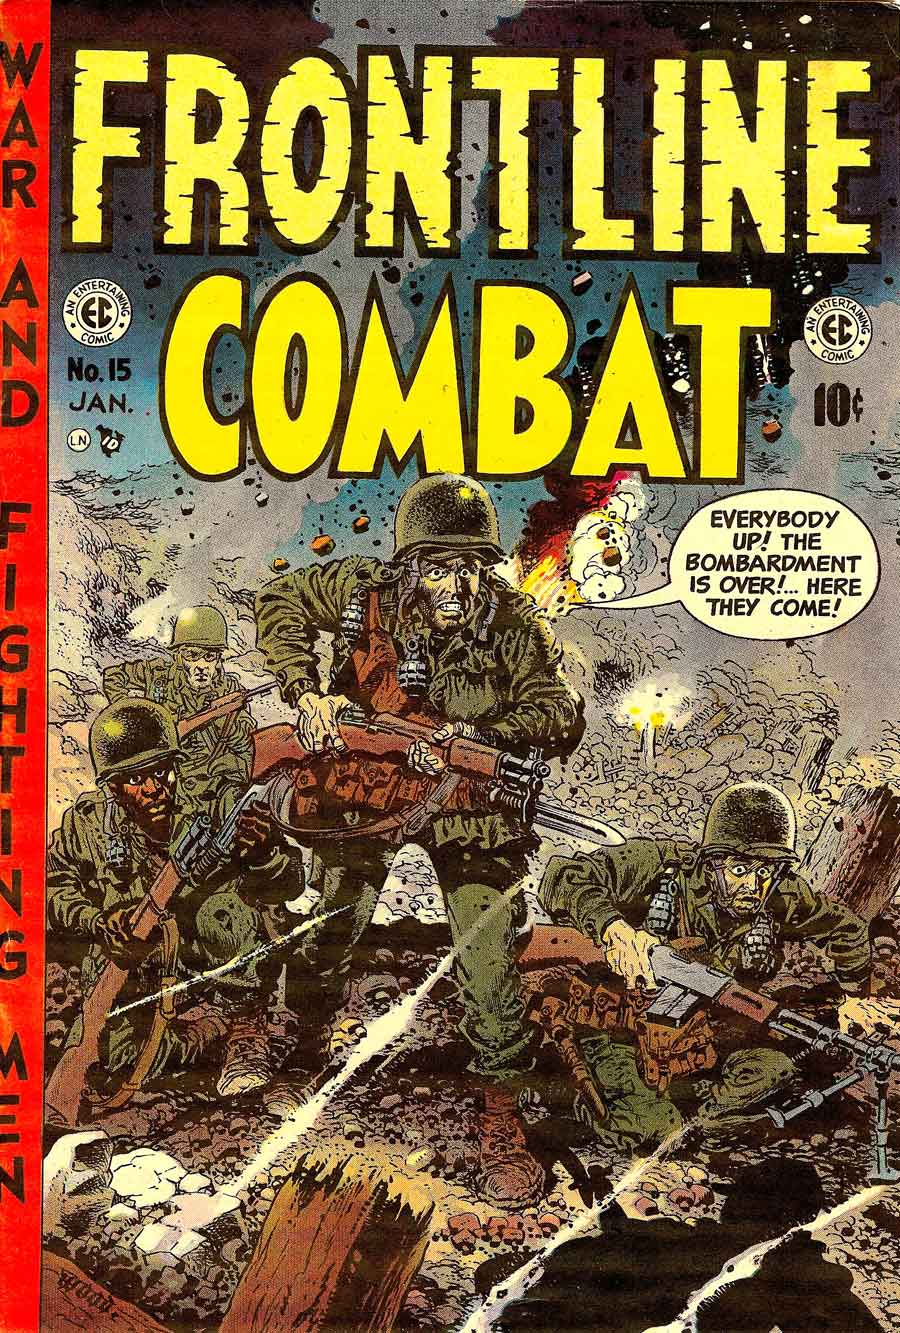 Frontline Combat v1 #15 ec golden age comic book cover art by Wally Wood